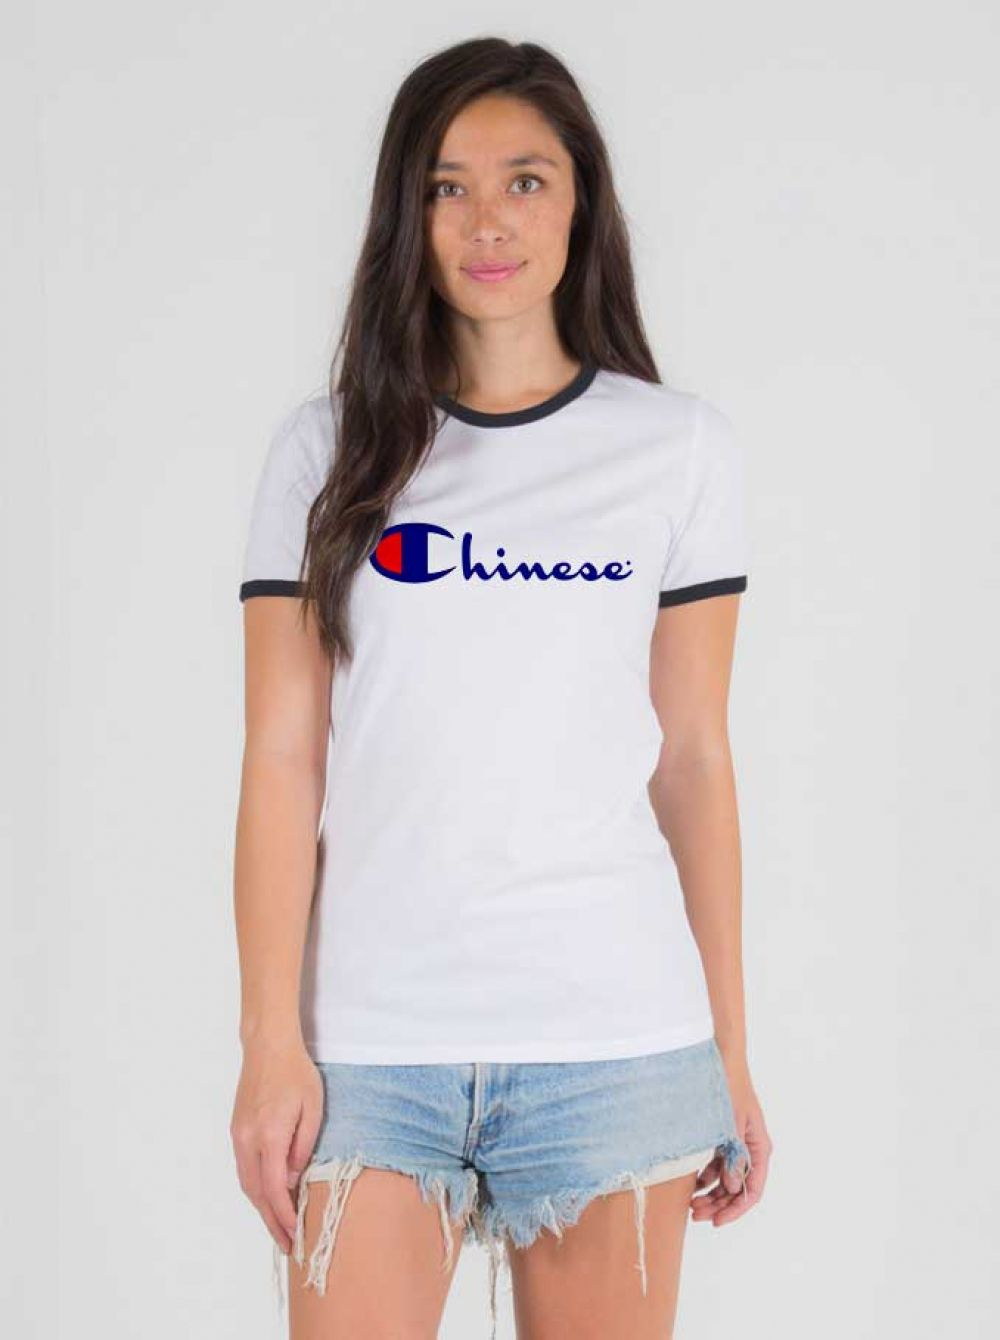 112d354e1 Chinese Champion Ringer Tee $ 14.50 #Tee #Hype #Outfits #Outfit #Hypebeast  #fashion #shirt #Tees #Tops #Teen